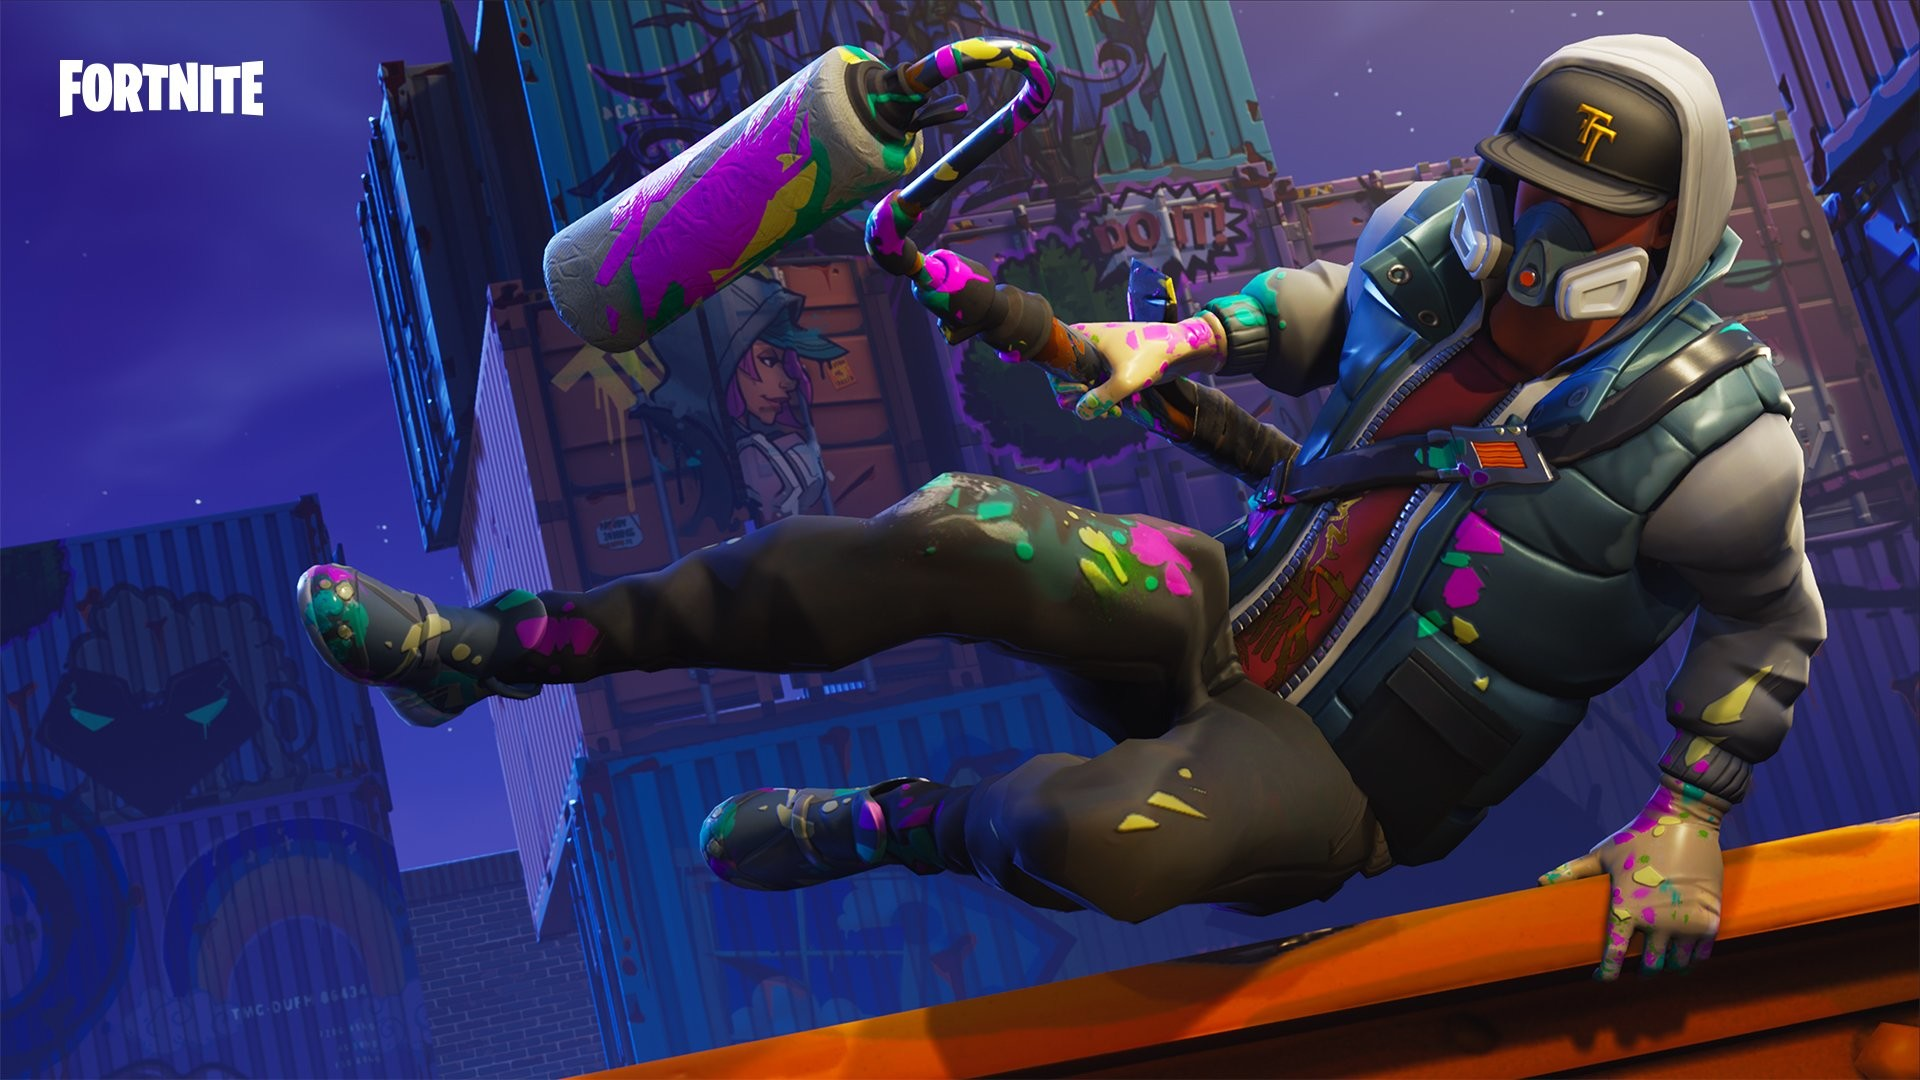 Watch Ninja Wipe Out 7 Enemies With 4 HP And No Materials In Fortnite |  Fortnite INTEL